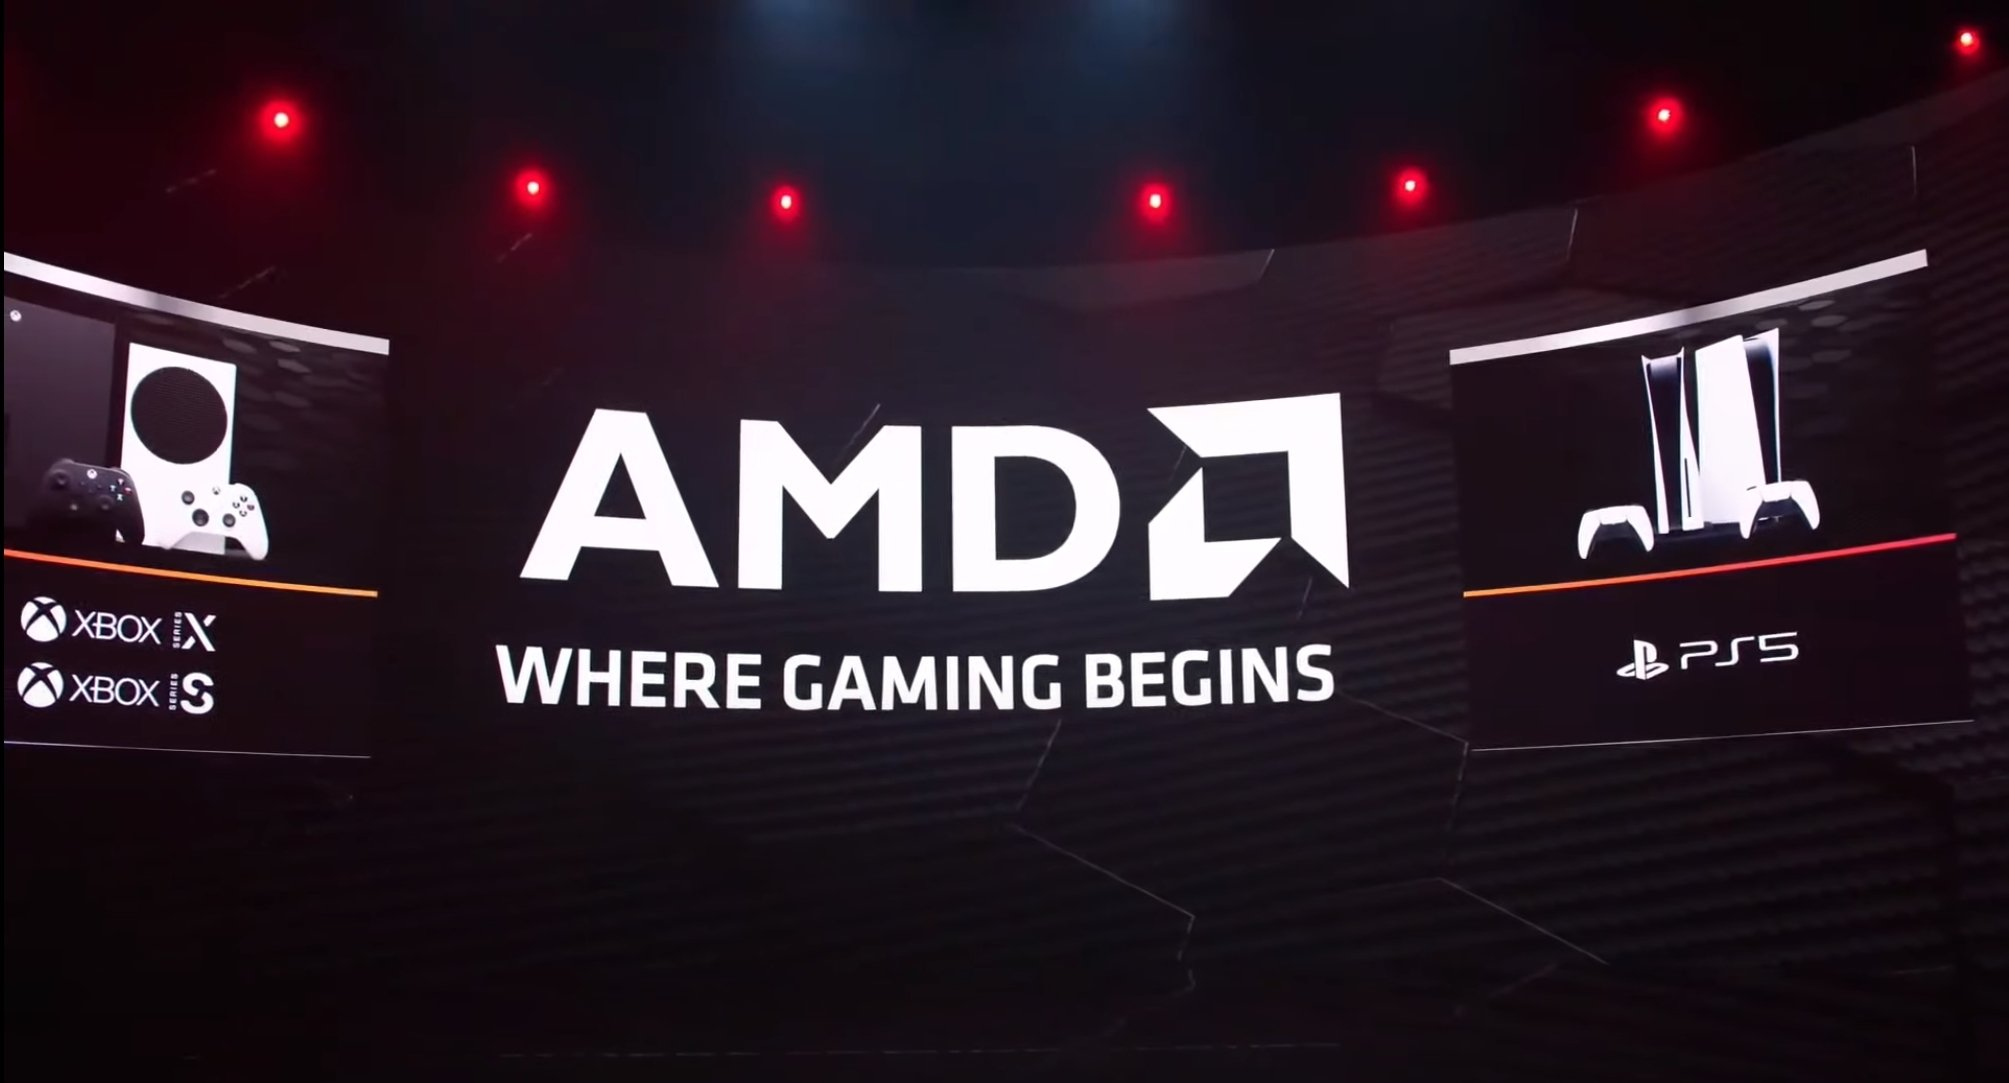 With Hours To Go, Will AMD's New Radeon 6000 GPU Reveal Hurt Nvidia's 3070 Sales At Release?